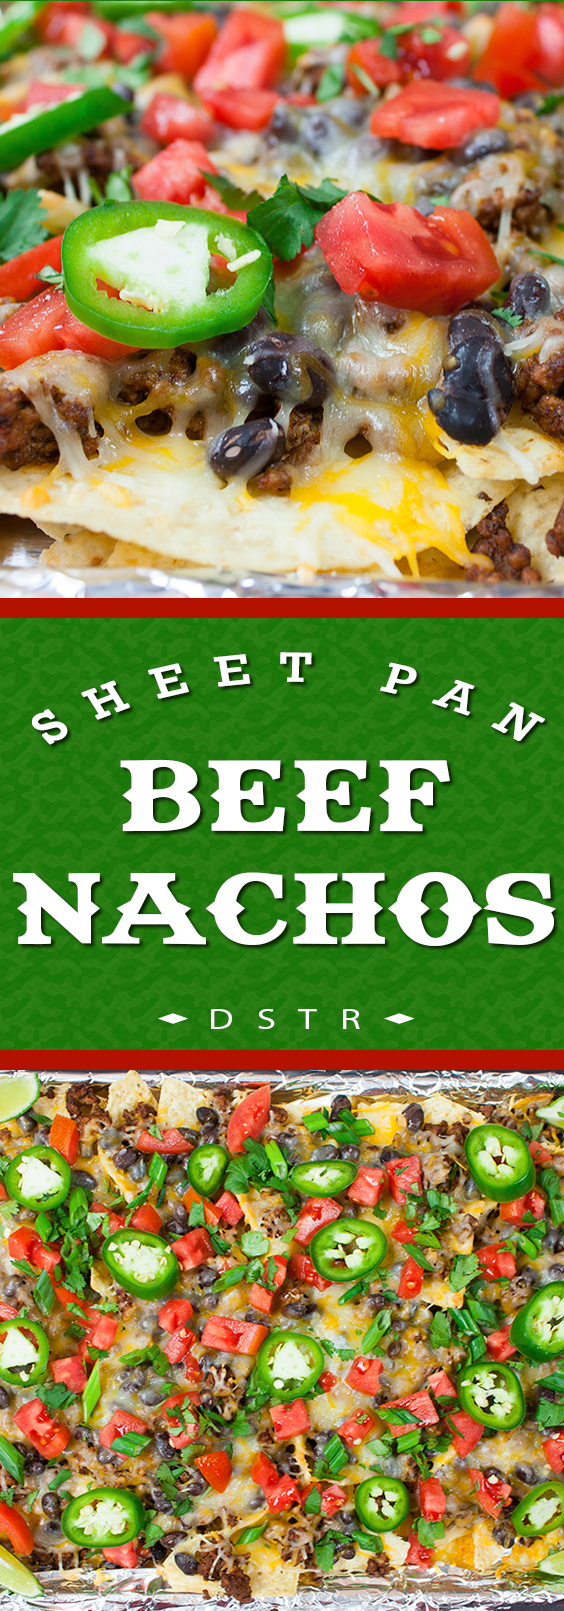 Sheet Pan Beef Nachos - Quick, easy and sure to please a crowd or just dinner for the family!